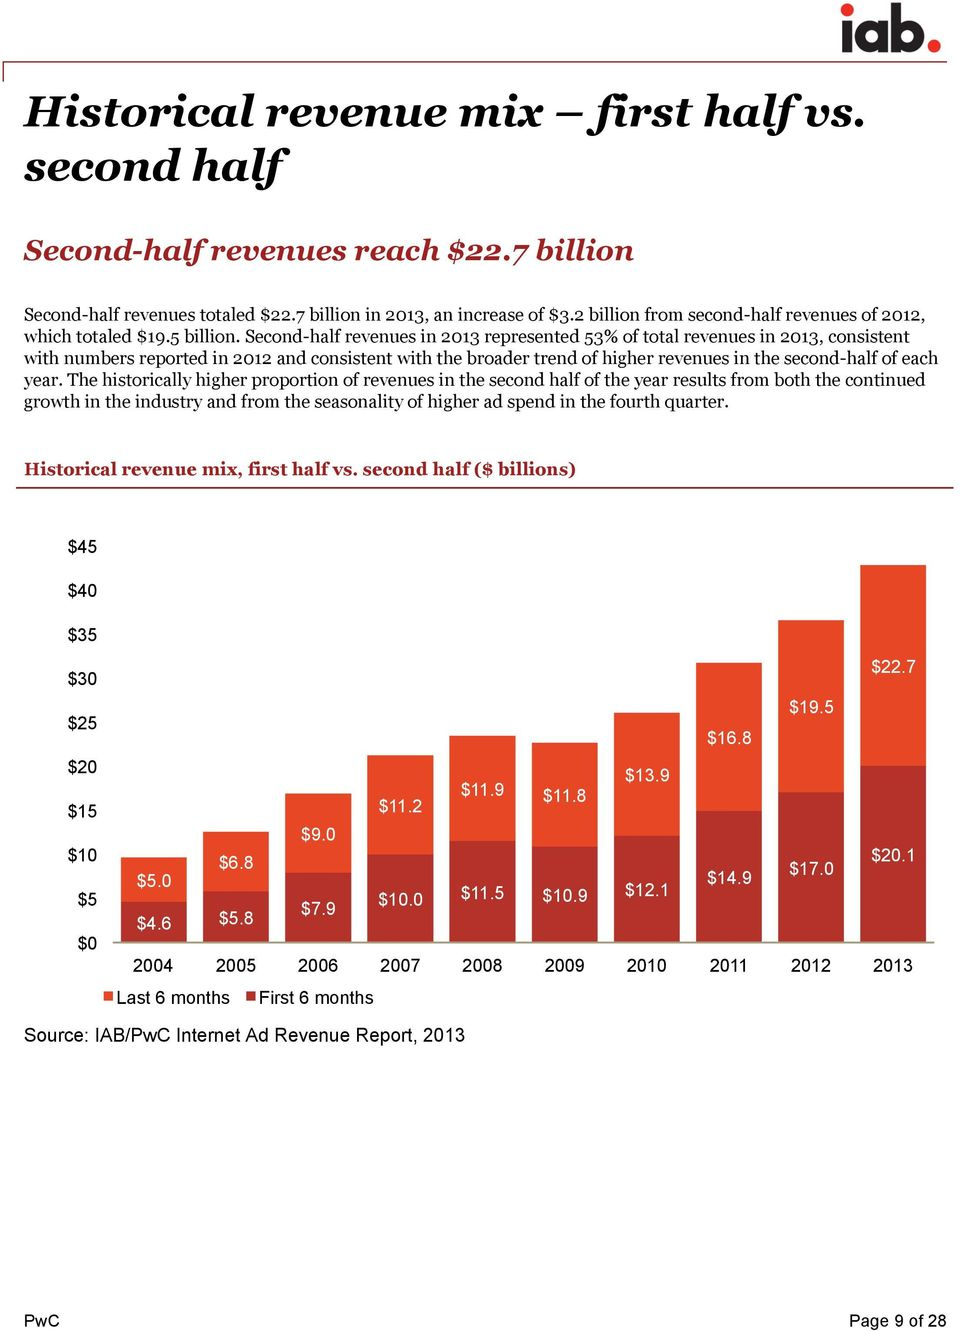 Second-half revenues in 2013 represented 53% of total revenues in 2013, consistent with numbers reported in 2012 and consistent with the broader trend of higher revenues in the second-half of each